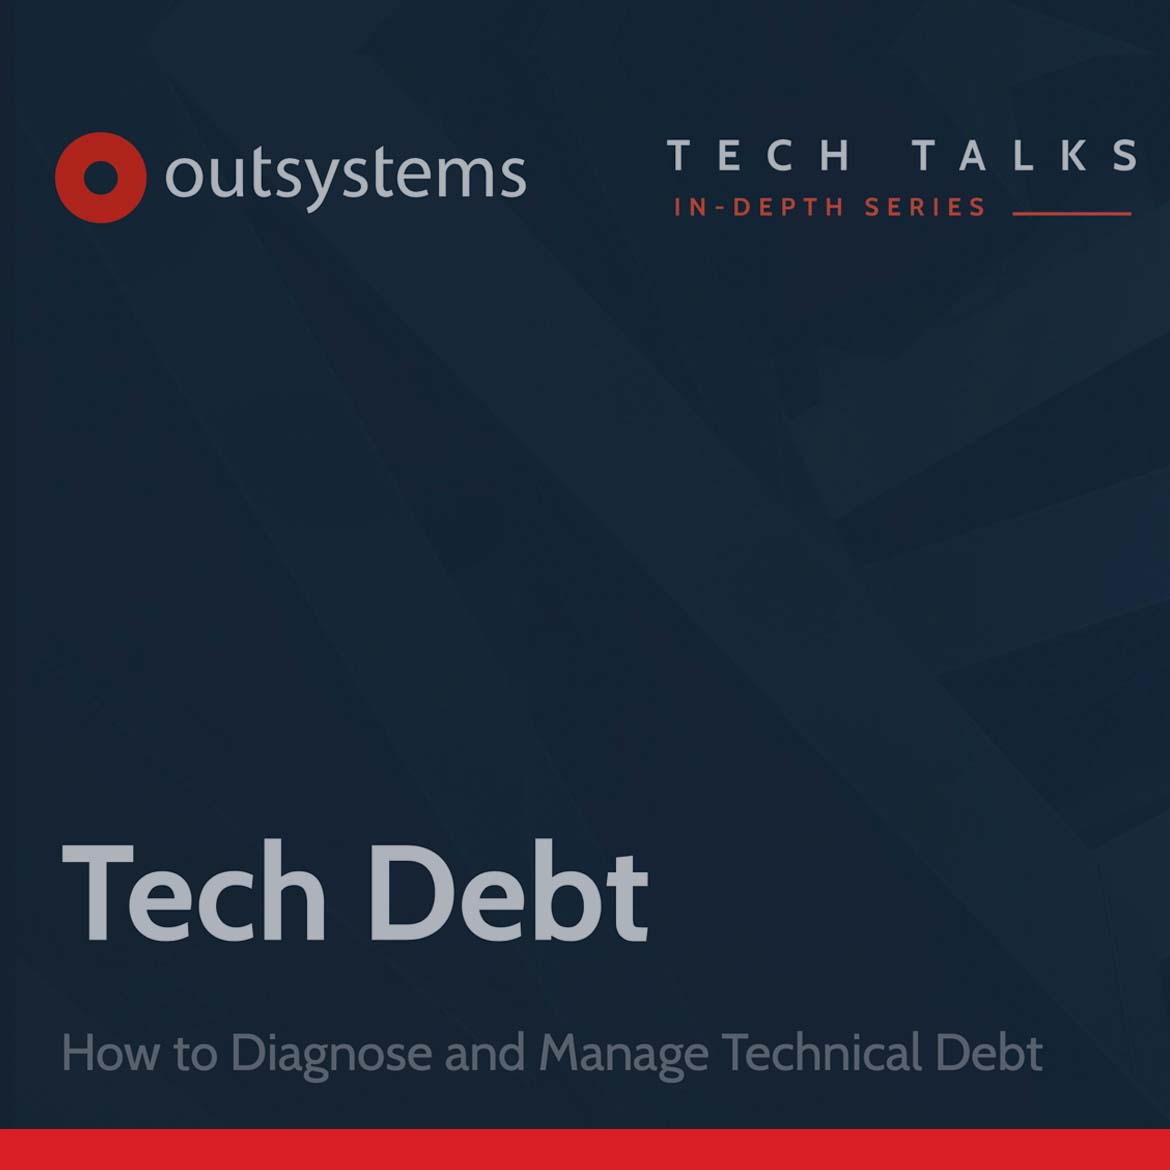 How to diagnose technical debt